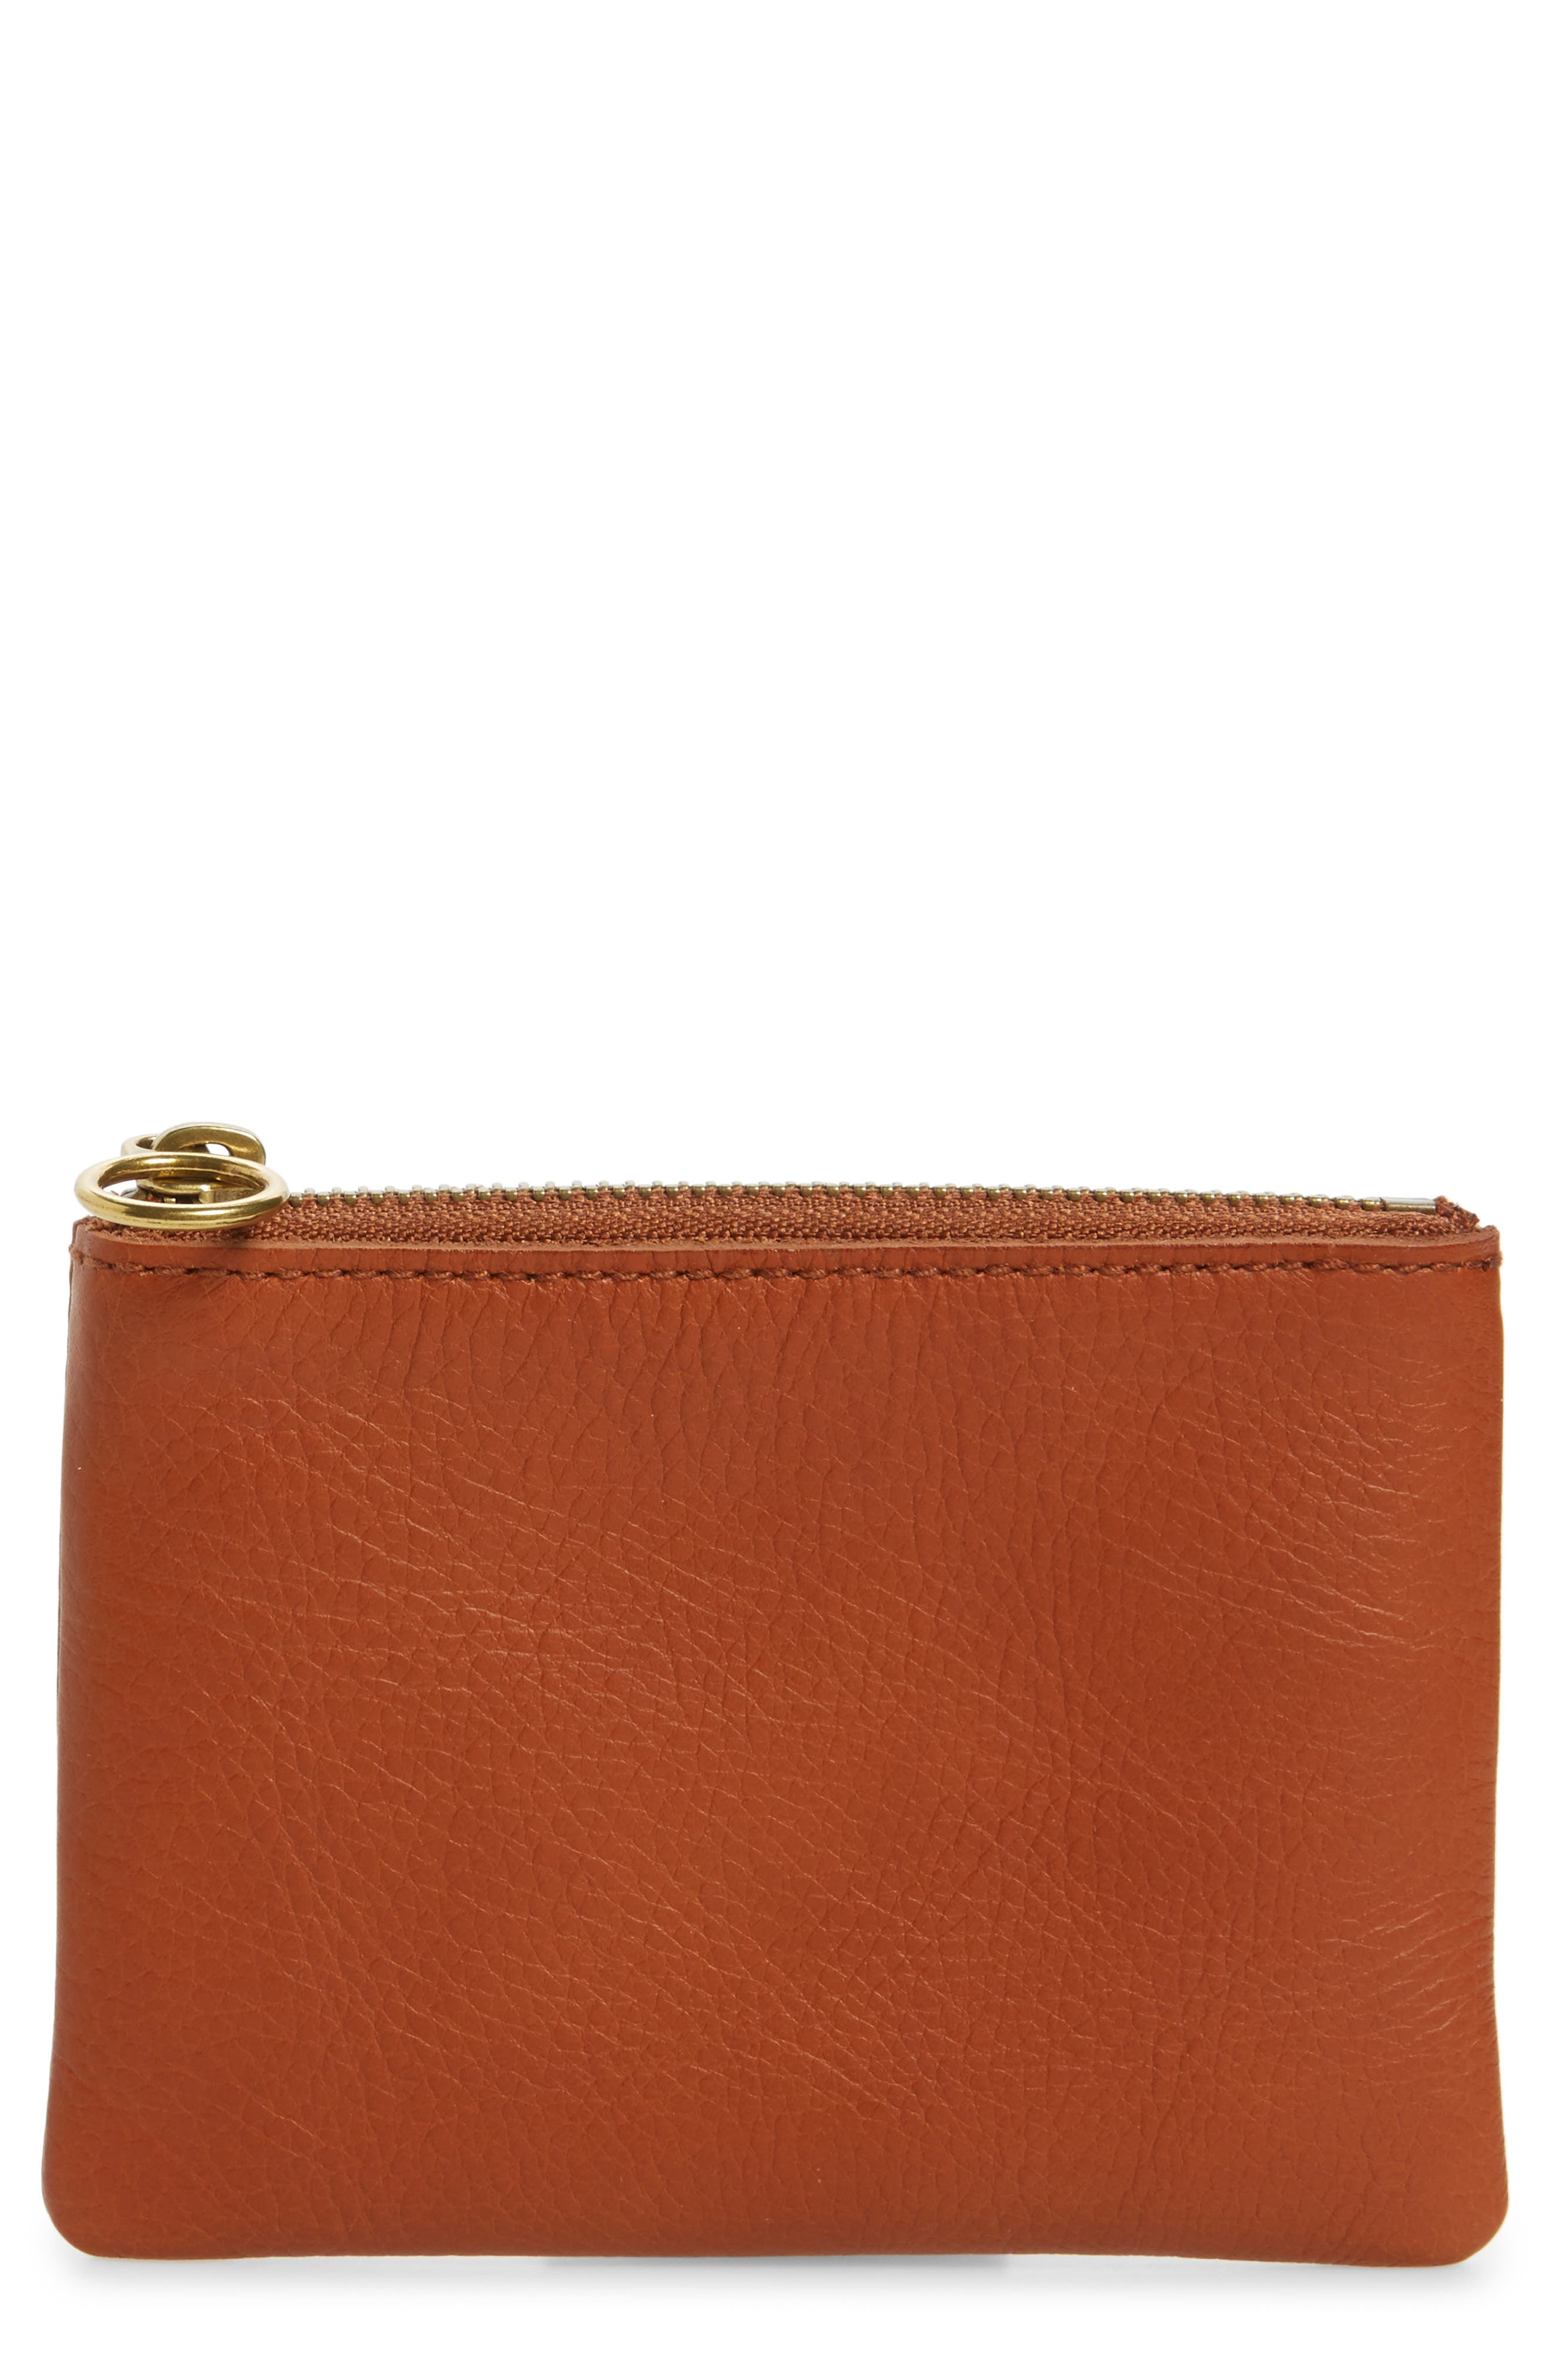 Madewell Small Victory Leather Pouch